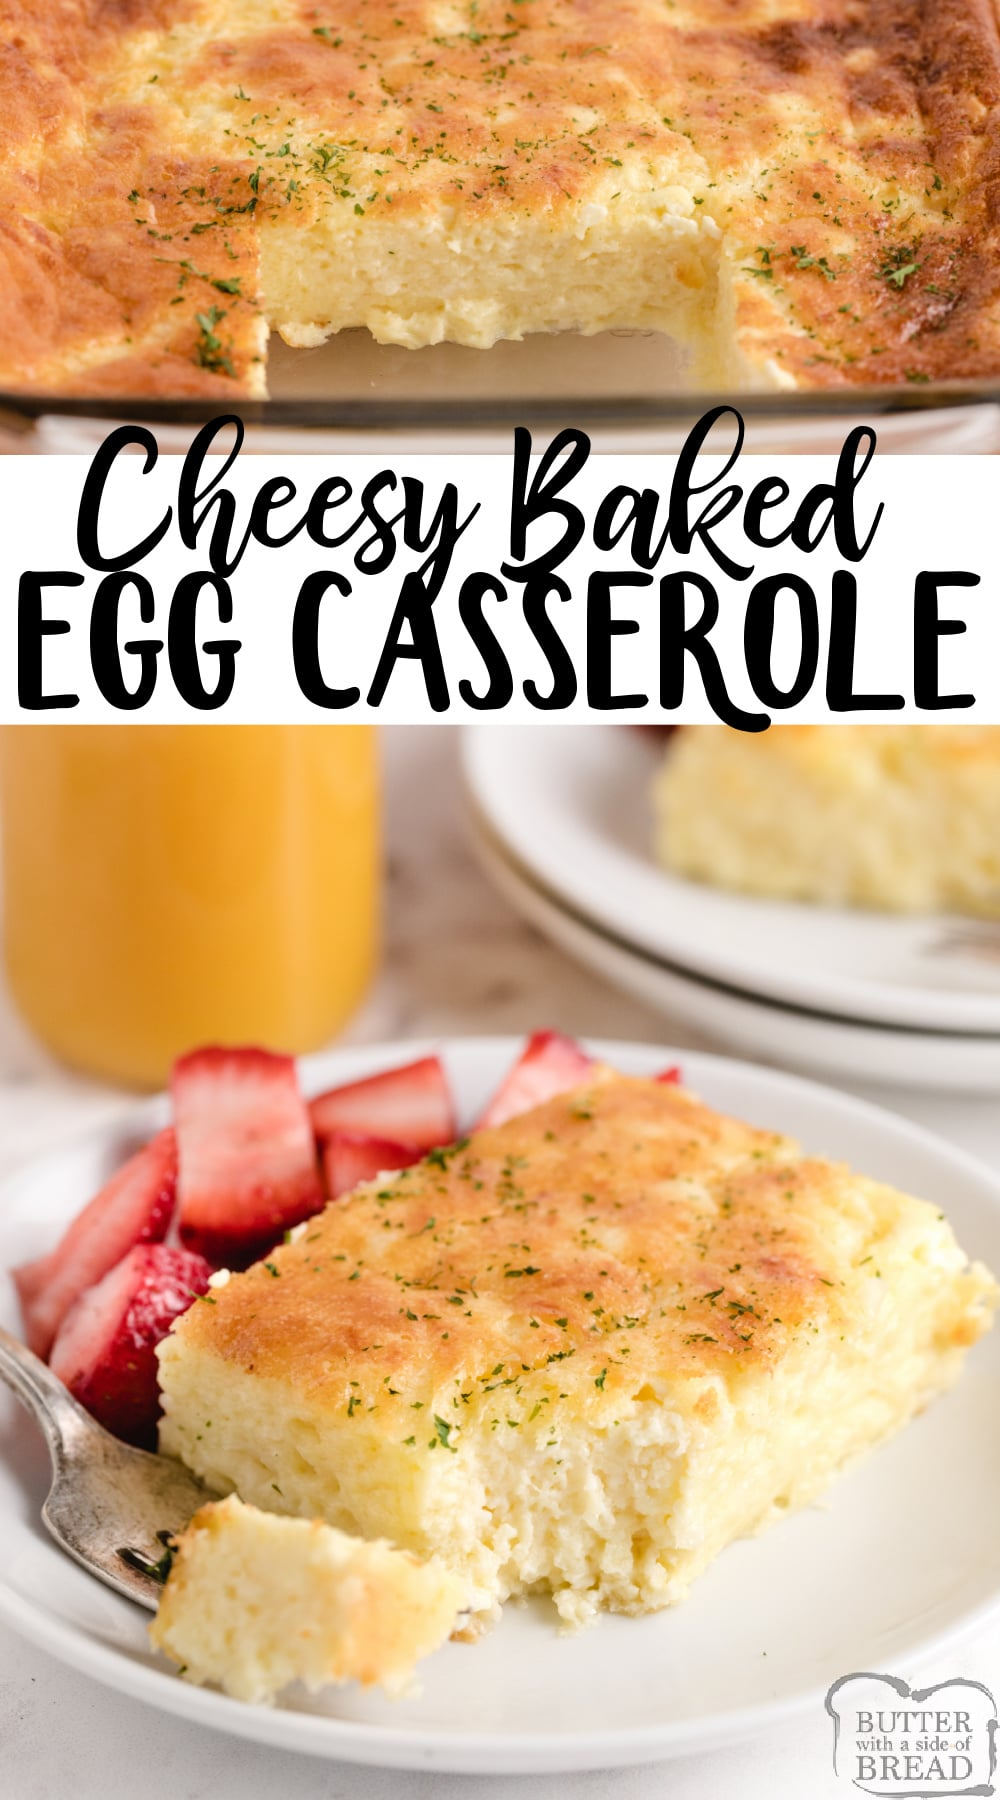 Cheesy Baked Egg Casserole made with eggs, milk and three different kinds of cheese. Perfect baked breakfast casserole recipe with tons of protein!